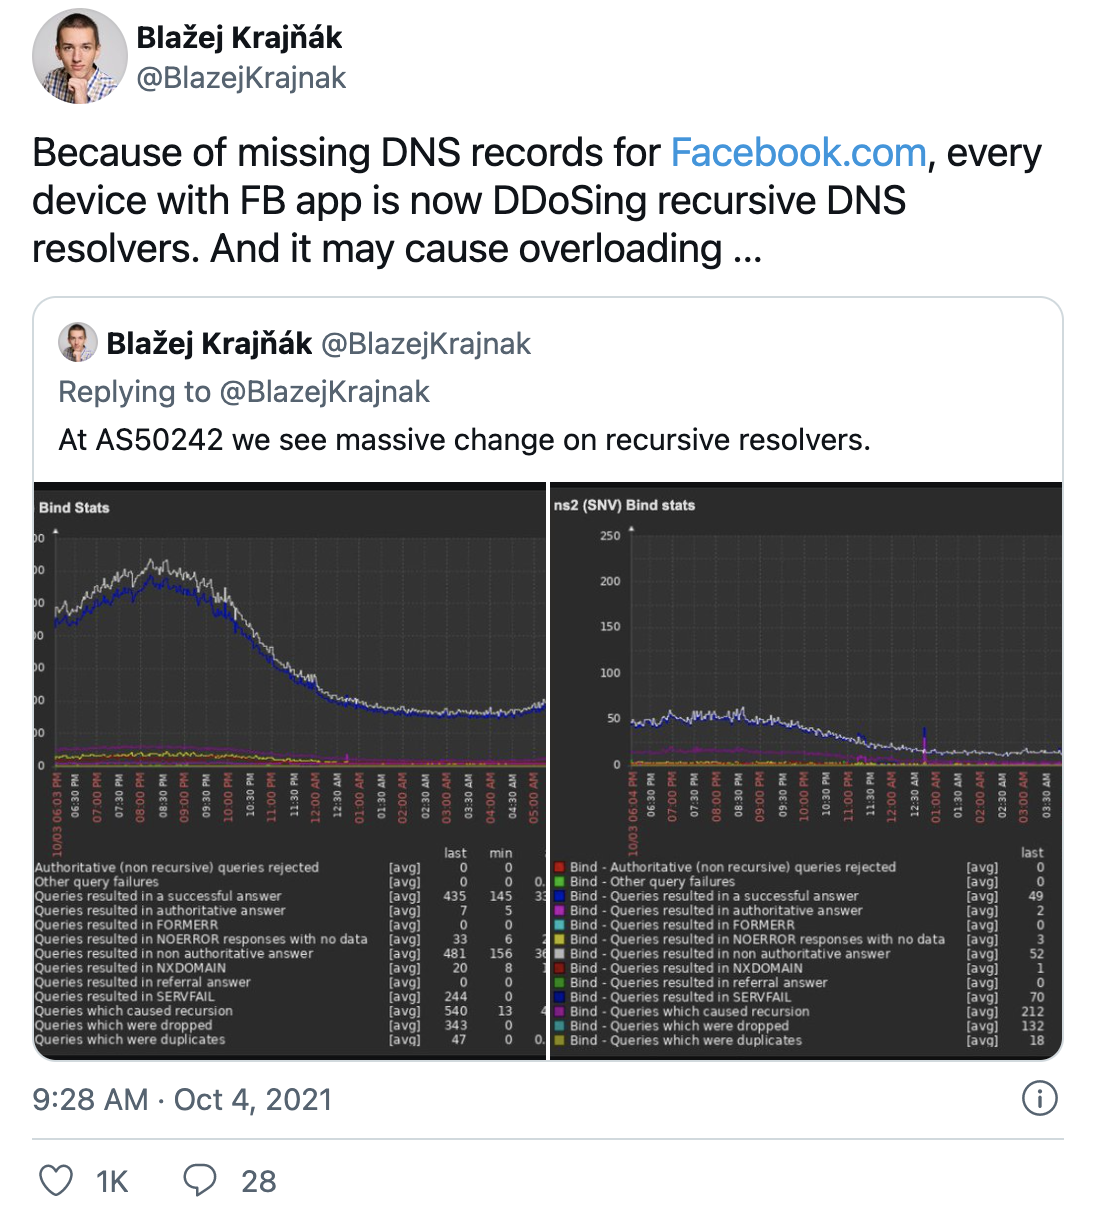 """Blažej Krajňák (@BlazejKrajnak) on Twitter: """"Because of missing DNS records for http://Facebook.com, every device with FB app is now DDoSing recursive DNS resolvers. And it may cause overloading..."""""""